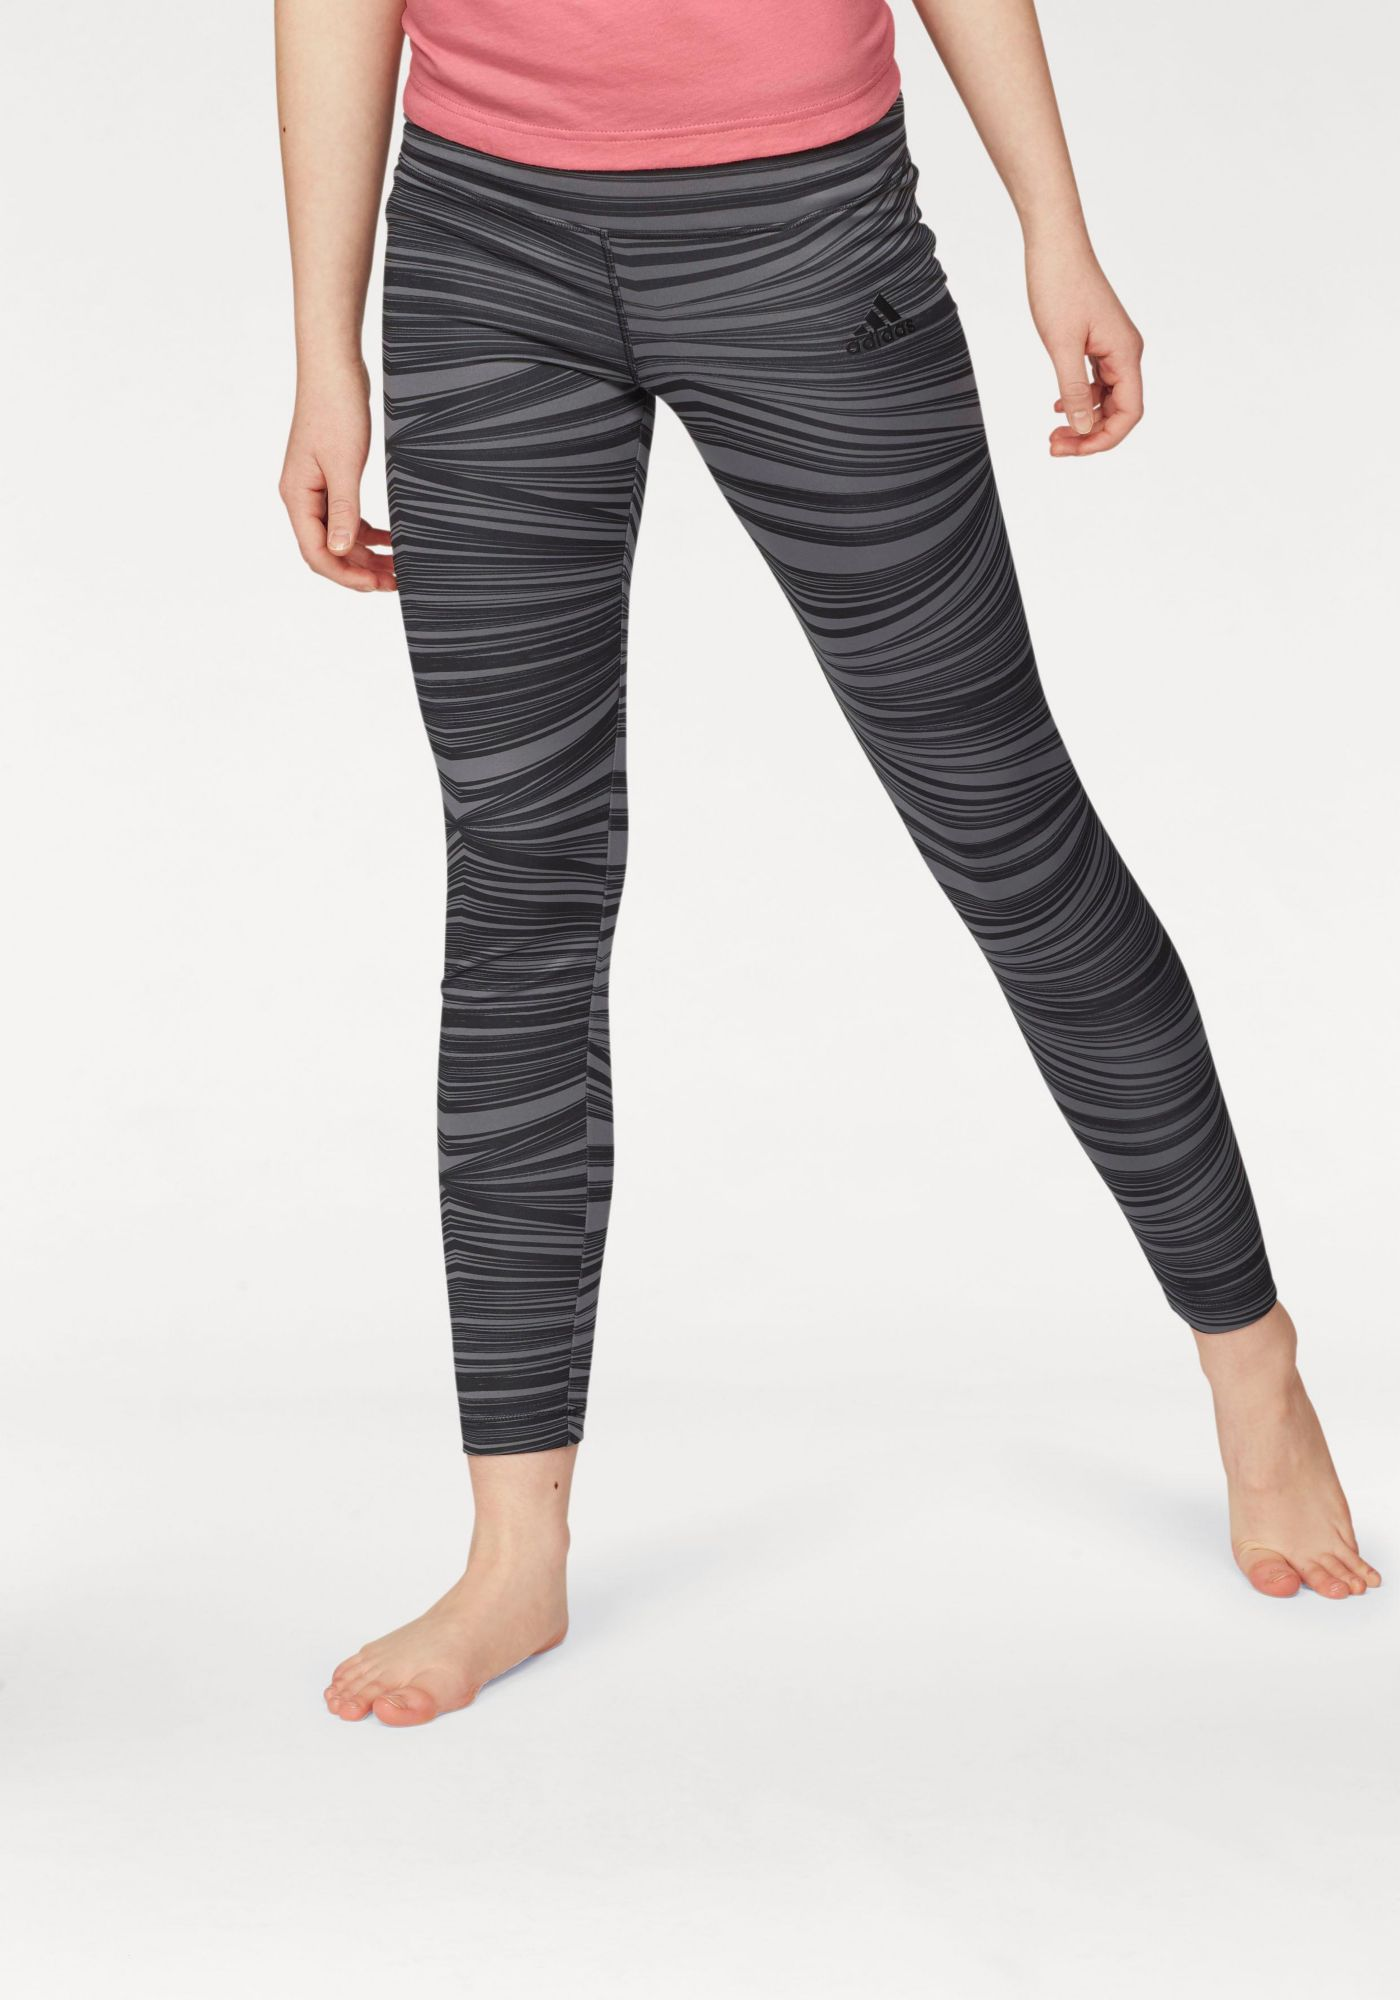 ADIDAS PERFORMANCE adidas Performance Funktionstights »YOUNG GIRL TR PR TIGHT«